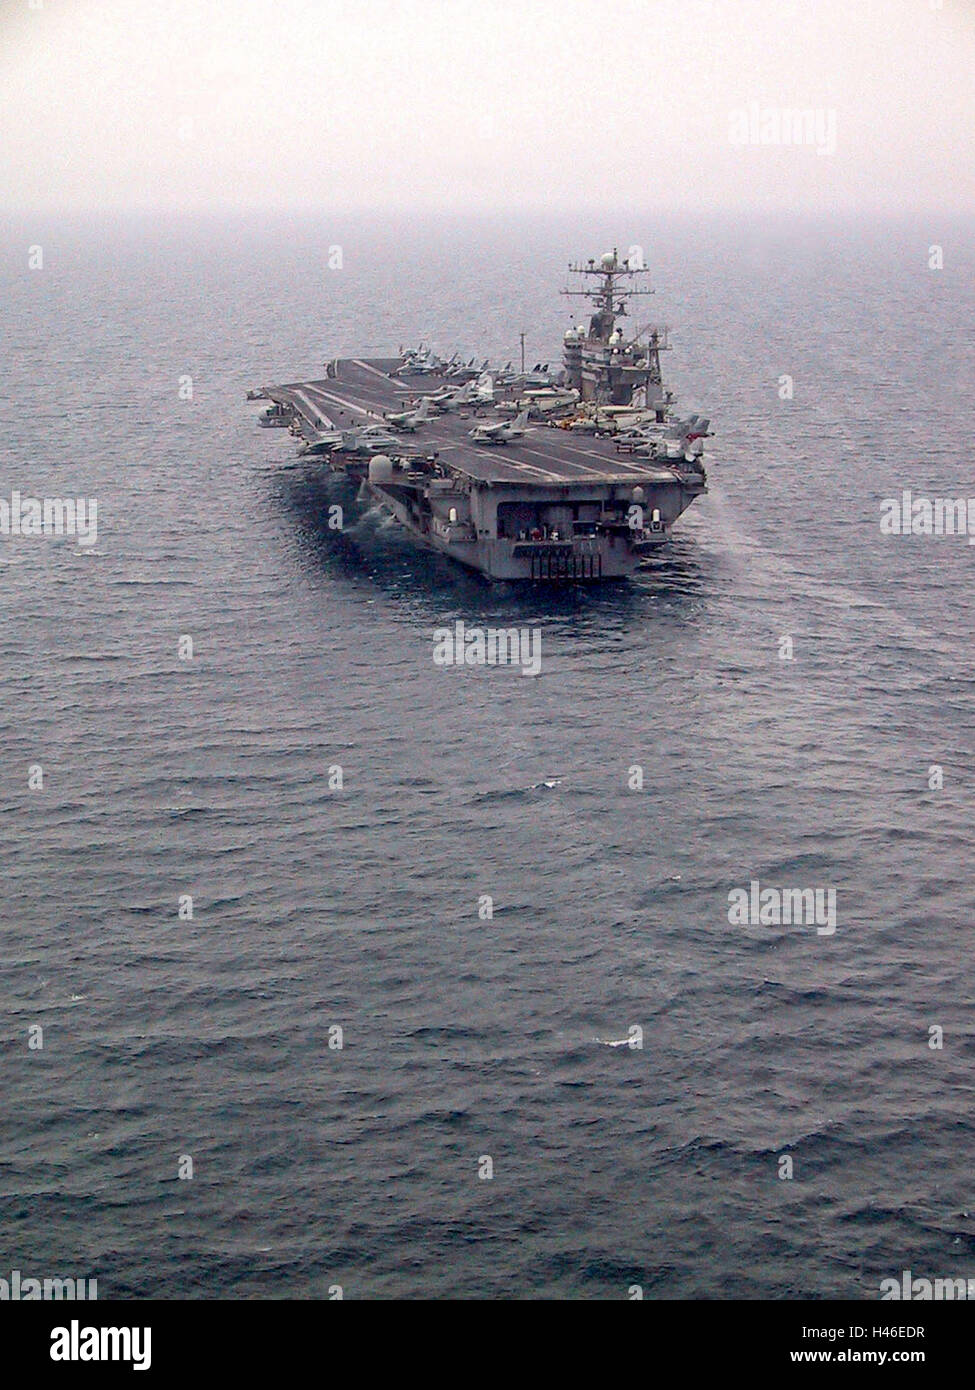 25th March 2003 Operation Iraqi Freedom: the USS Abraham Lincoln during flight operations in the Persian Gulf. - Stock Image